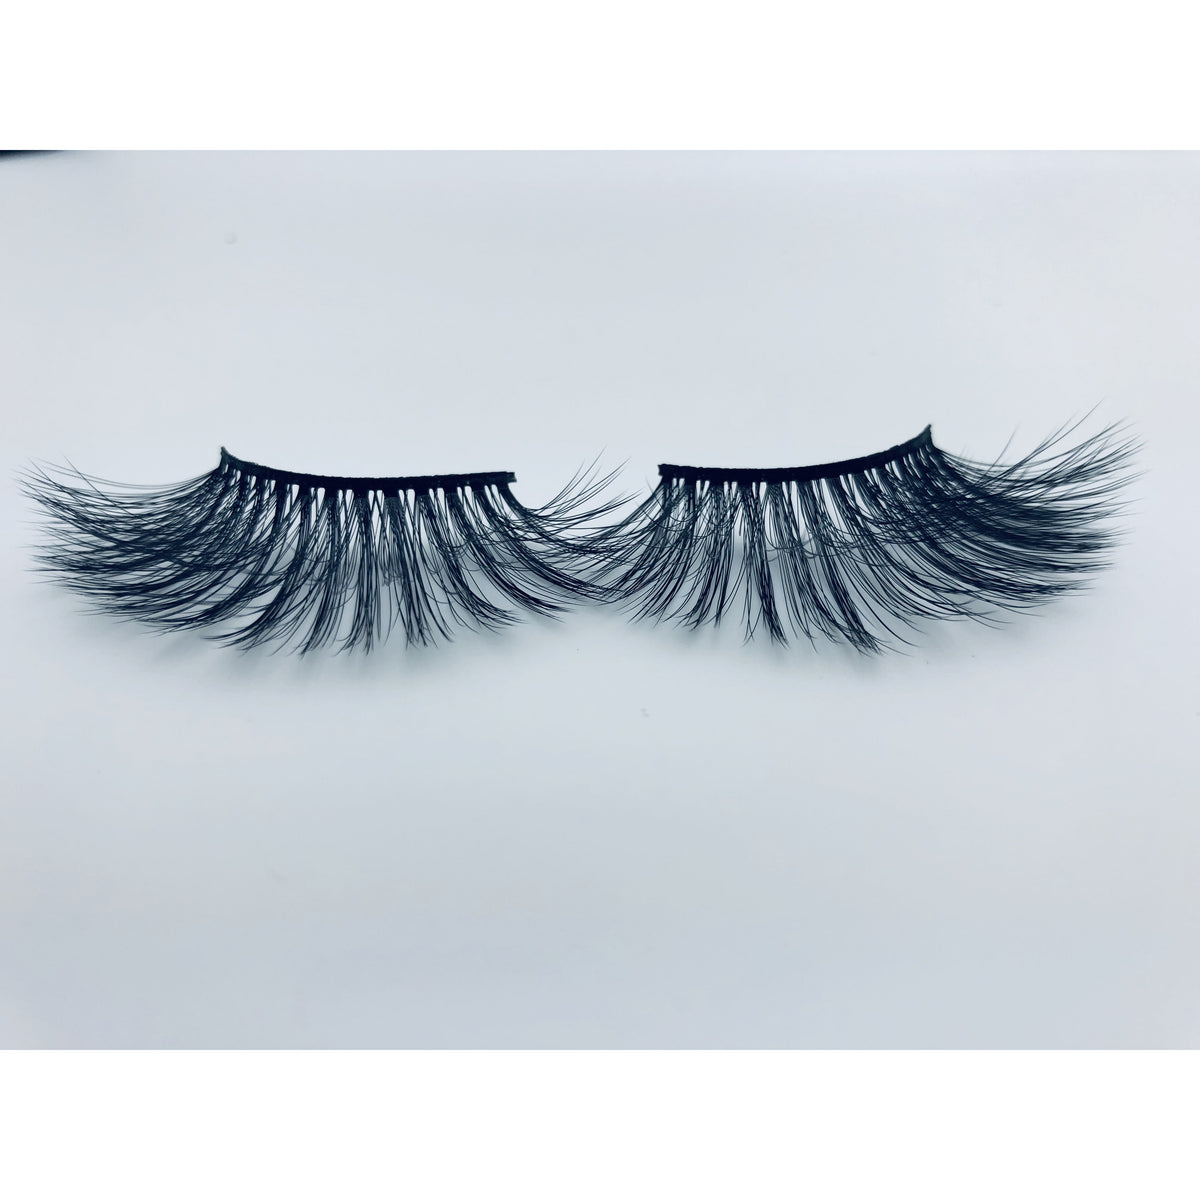 LIT UNICORNS - lashes - THAT B!TCH (25mm)